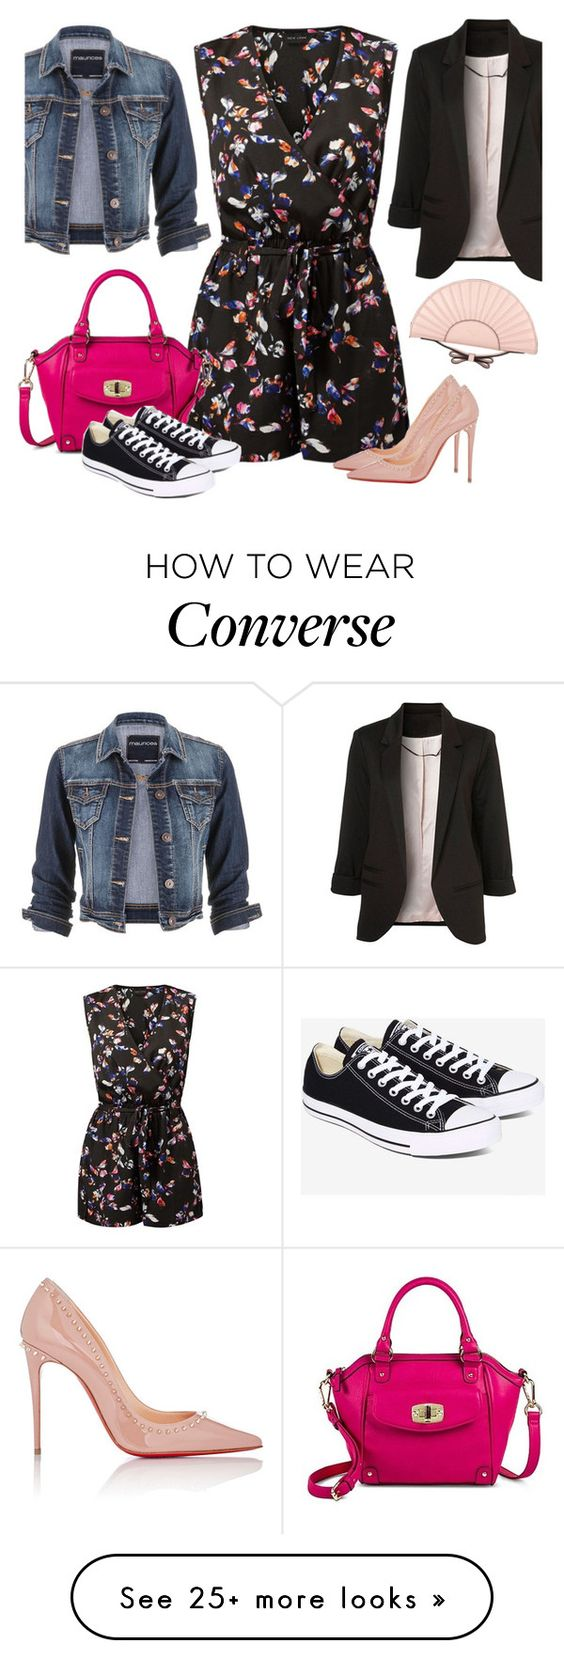 """""""Day to Night Romper"""" by mmmartha on Polyvore featuring maurices, Merona, RED Valentino, Converse and Christian Louboutin"""